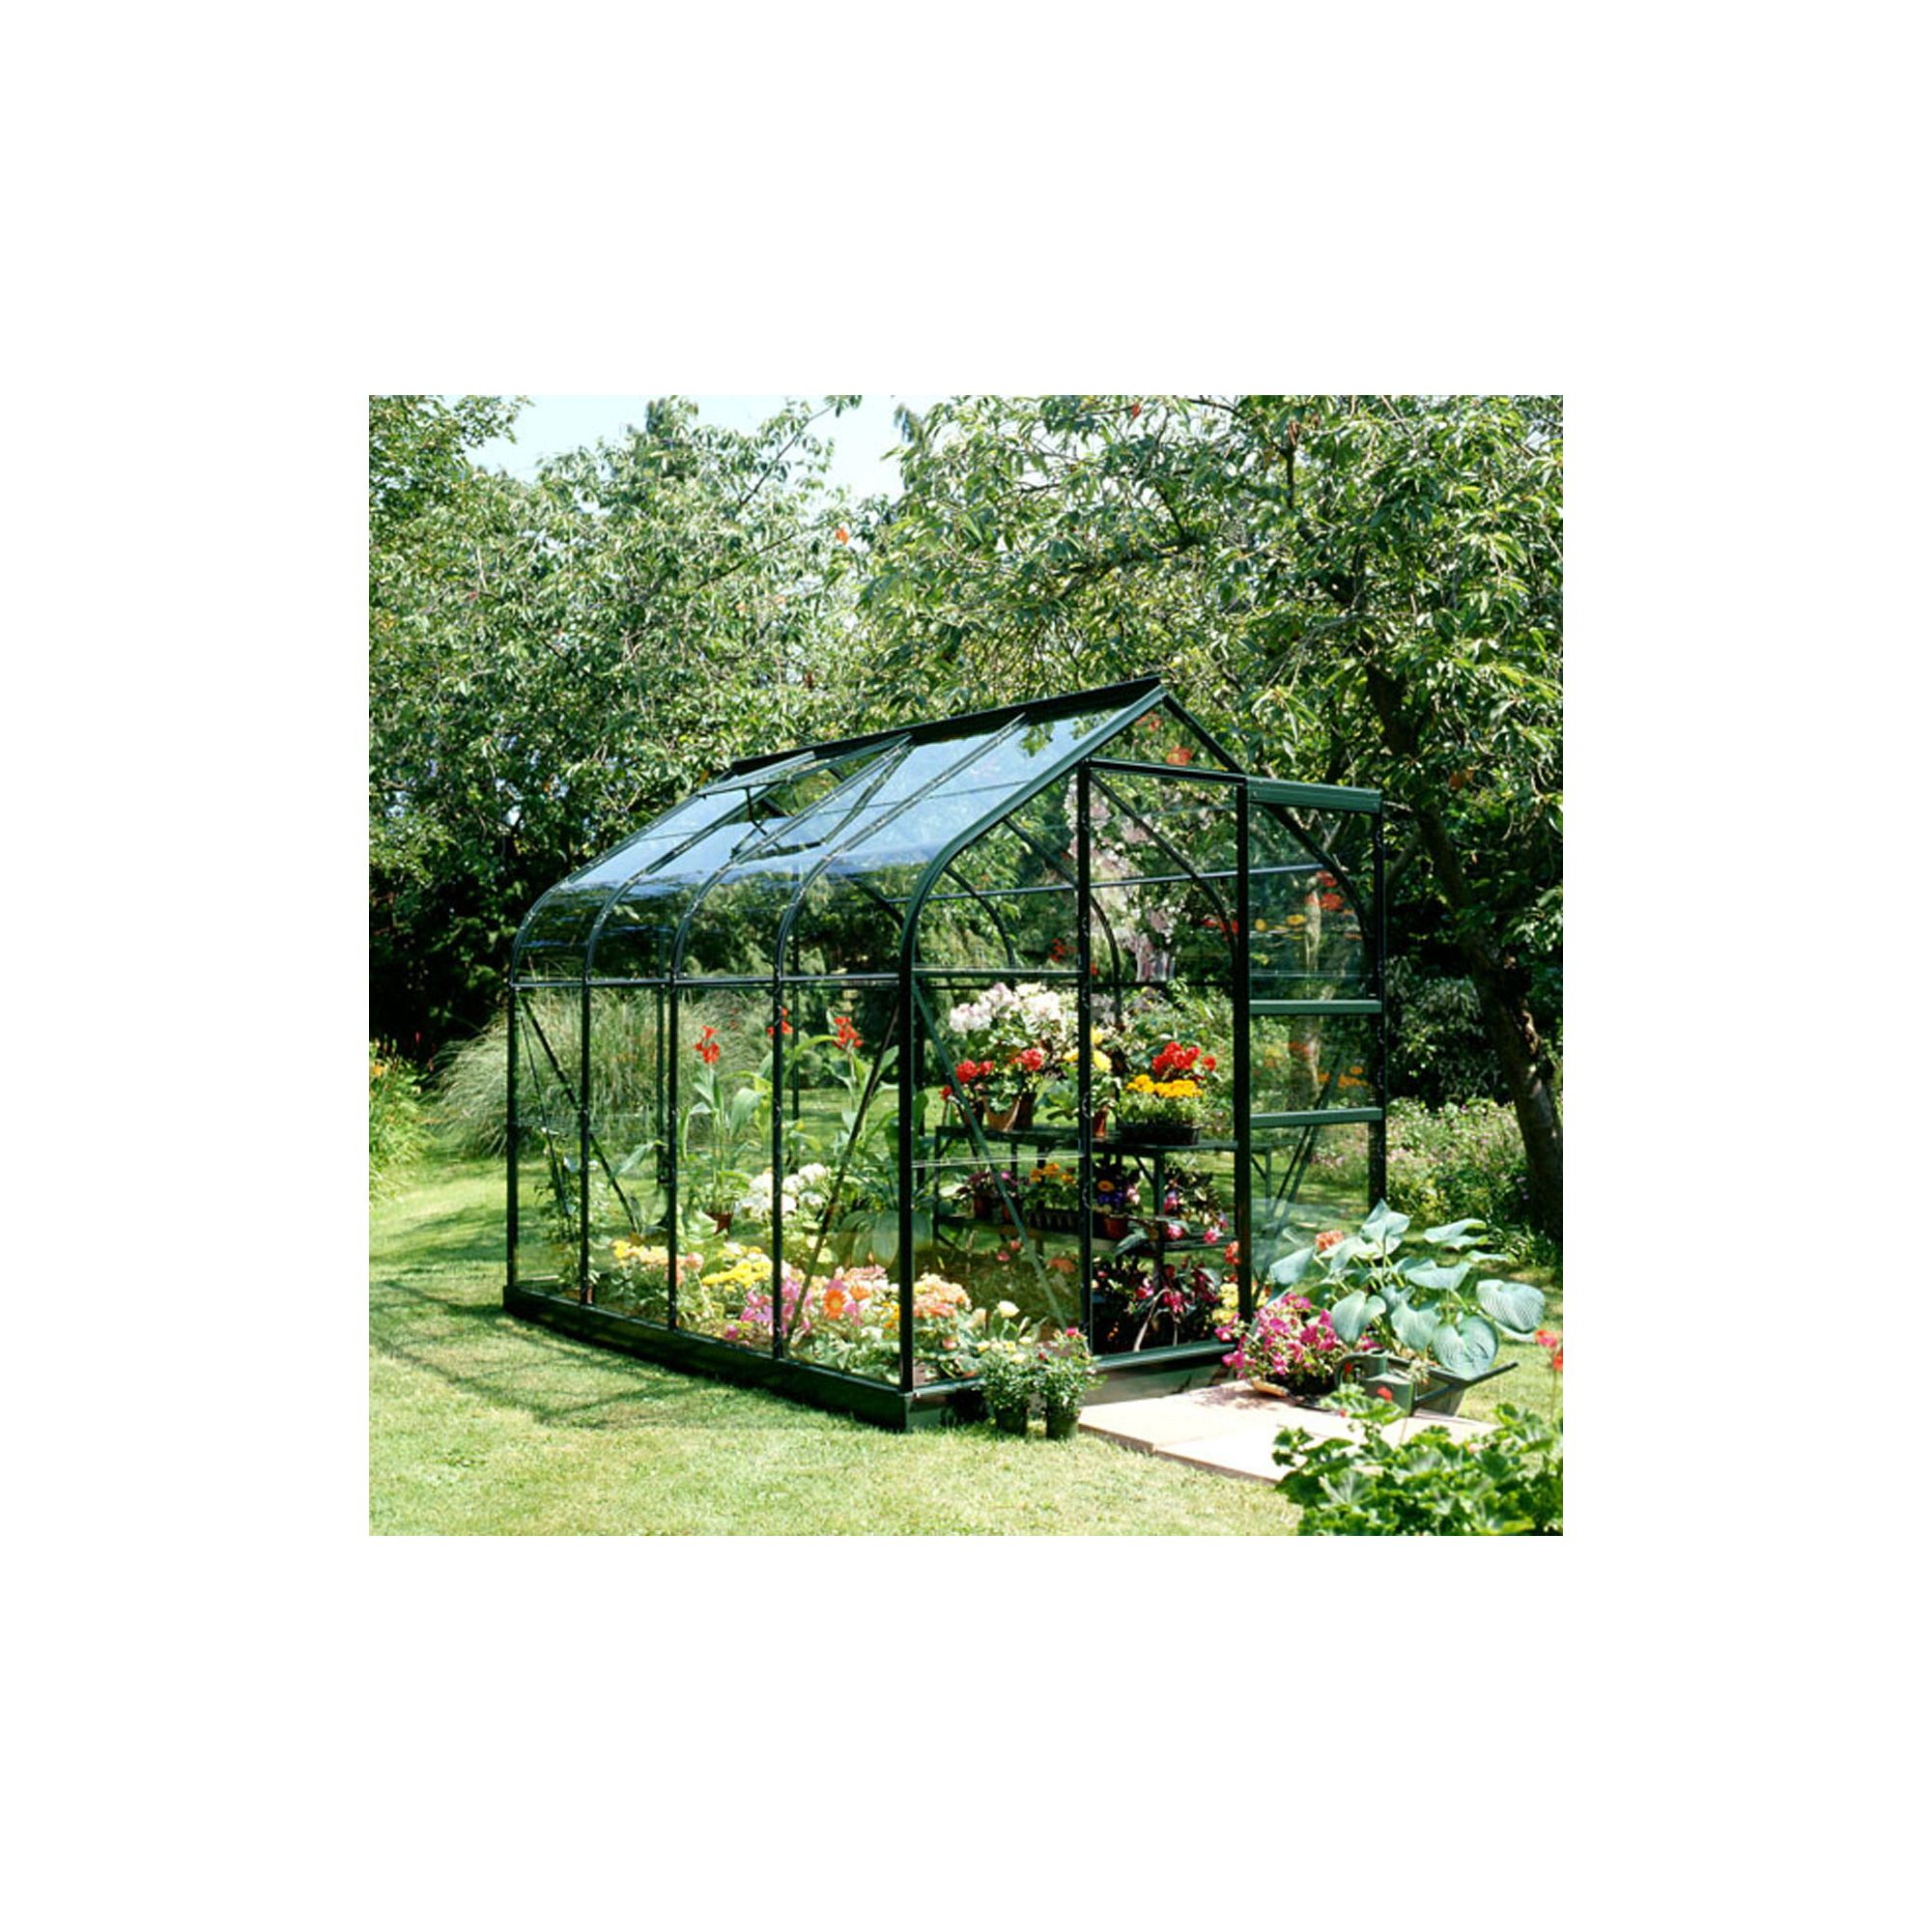 Halls 8x6 Supreme Greenframe Greenhouse + Base - Toughened Glass at Tesco Direct